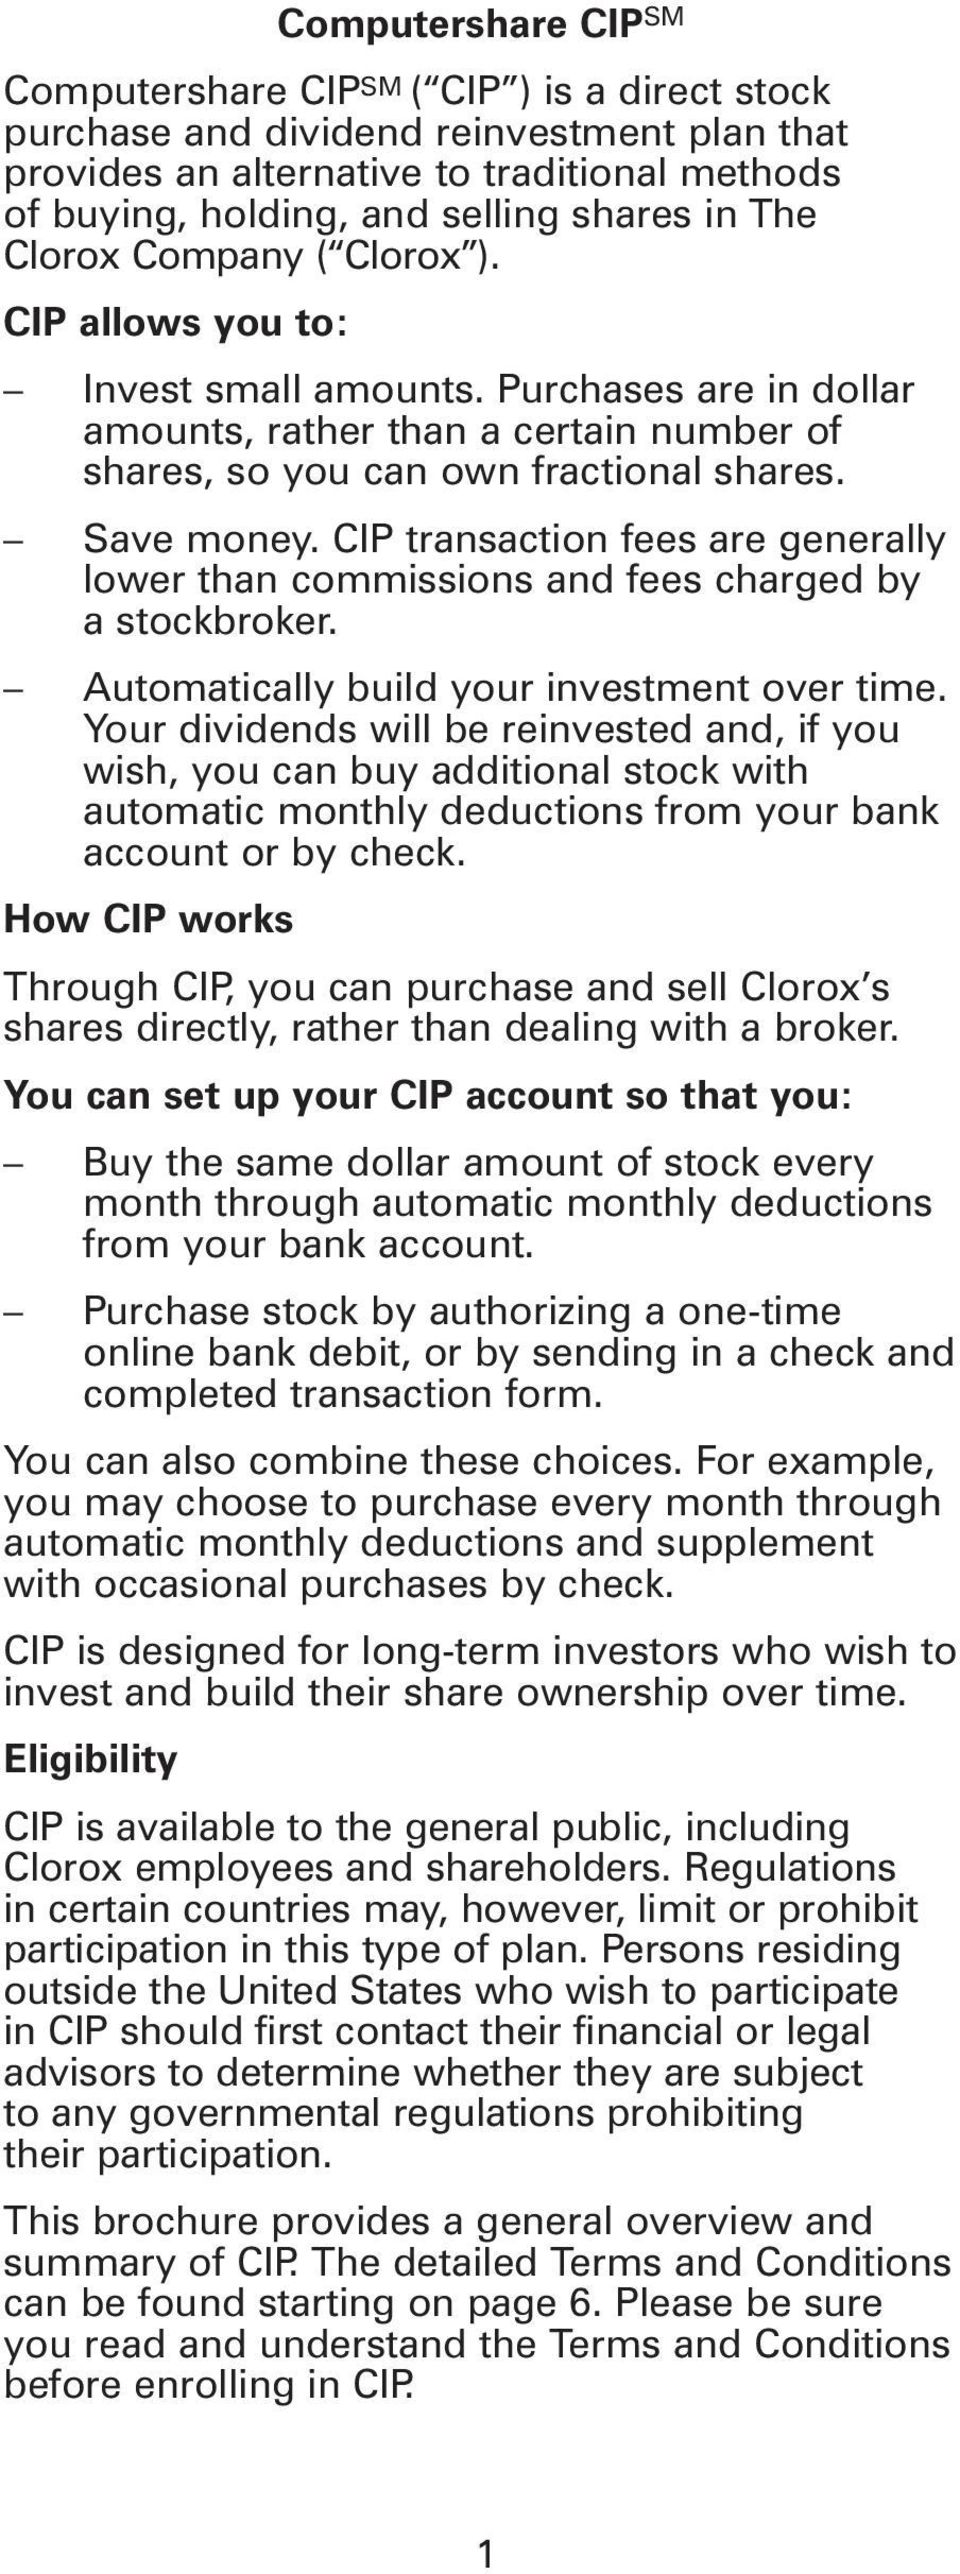 CIP transaction fees are generally lower than commissions and fees charged by a stockbroker. Automatically build your investment over time.